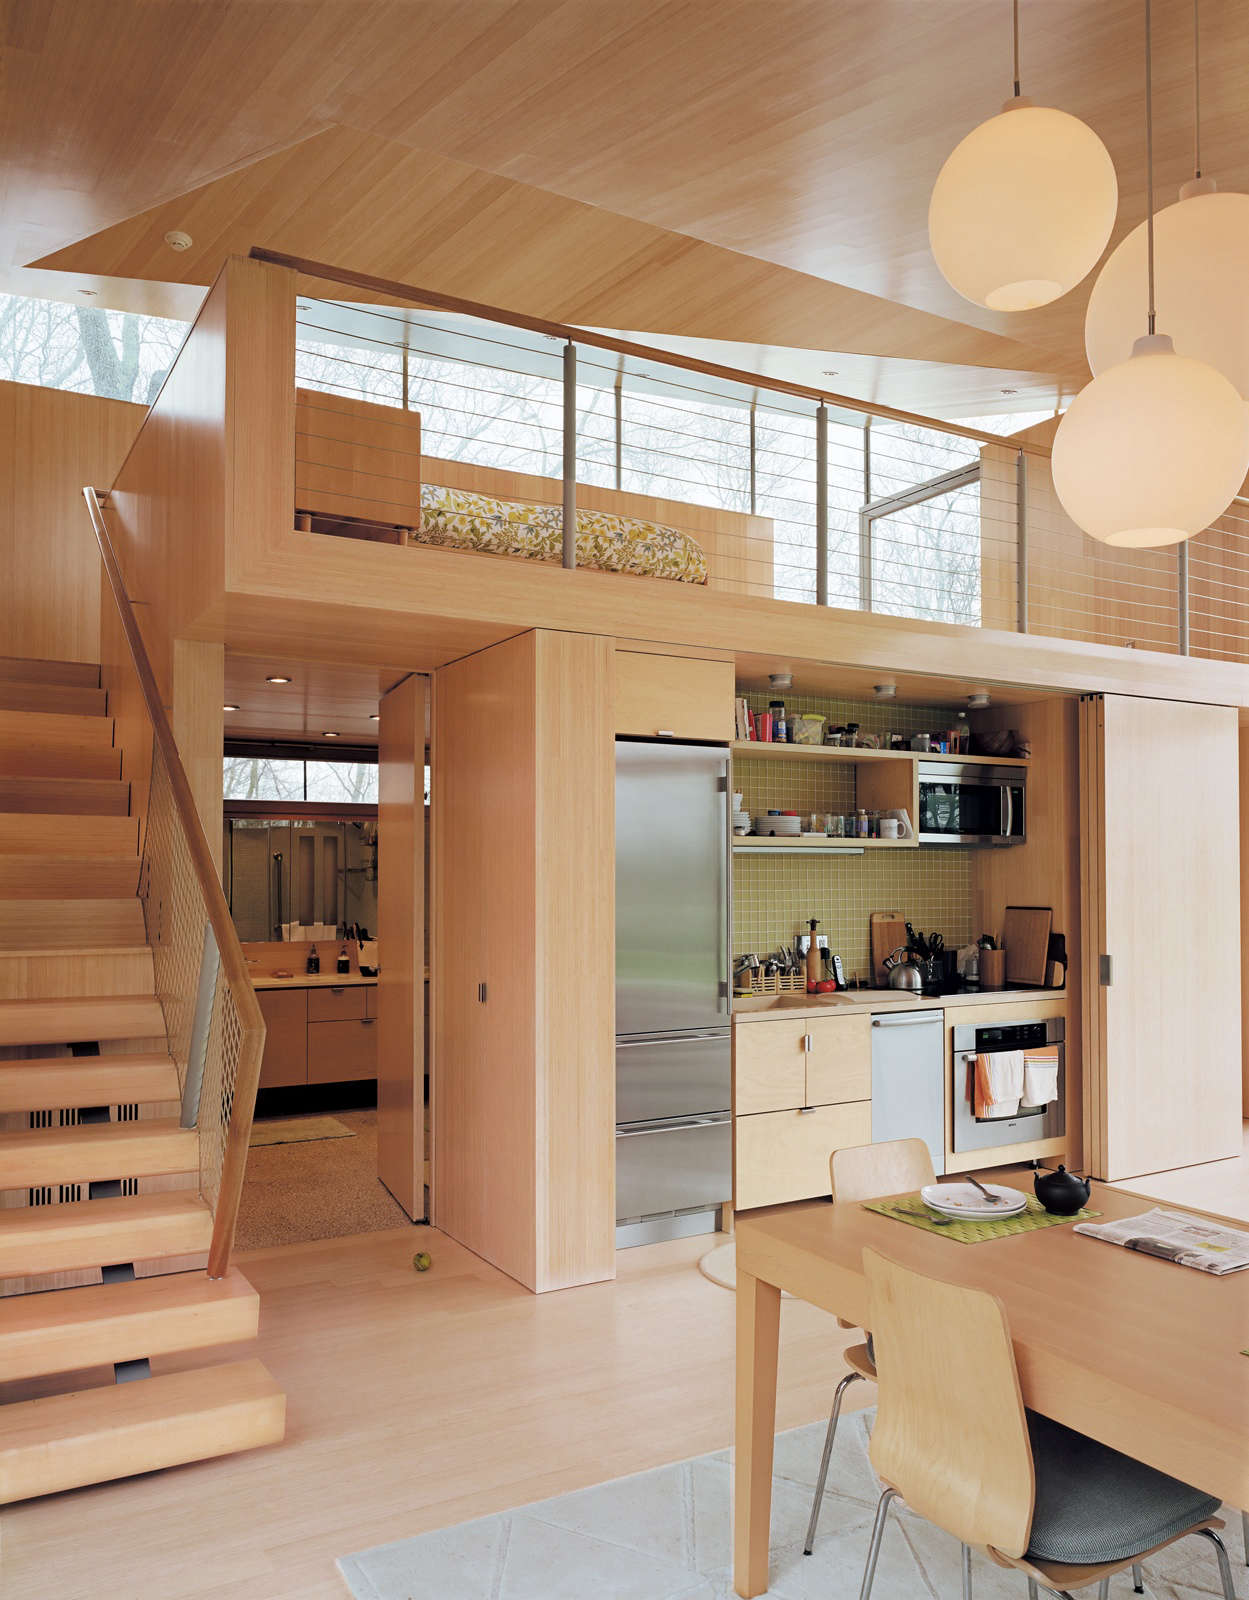 A small kitchen concealed behind folding doors in a project by Gray Organschi Architecture.Photograph by Mark Mahaney.